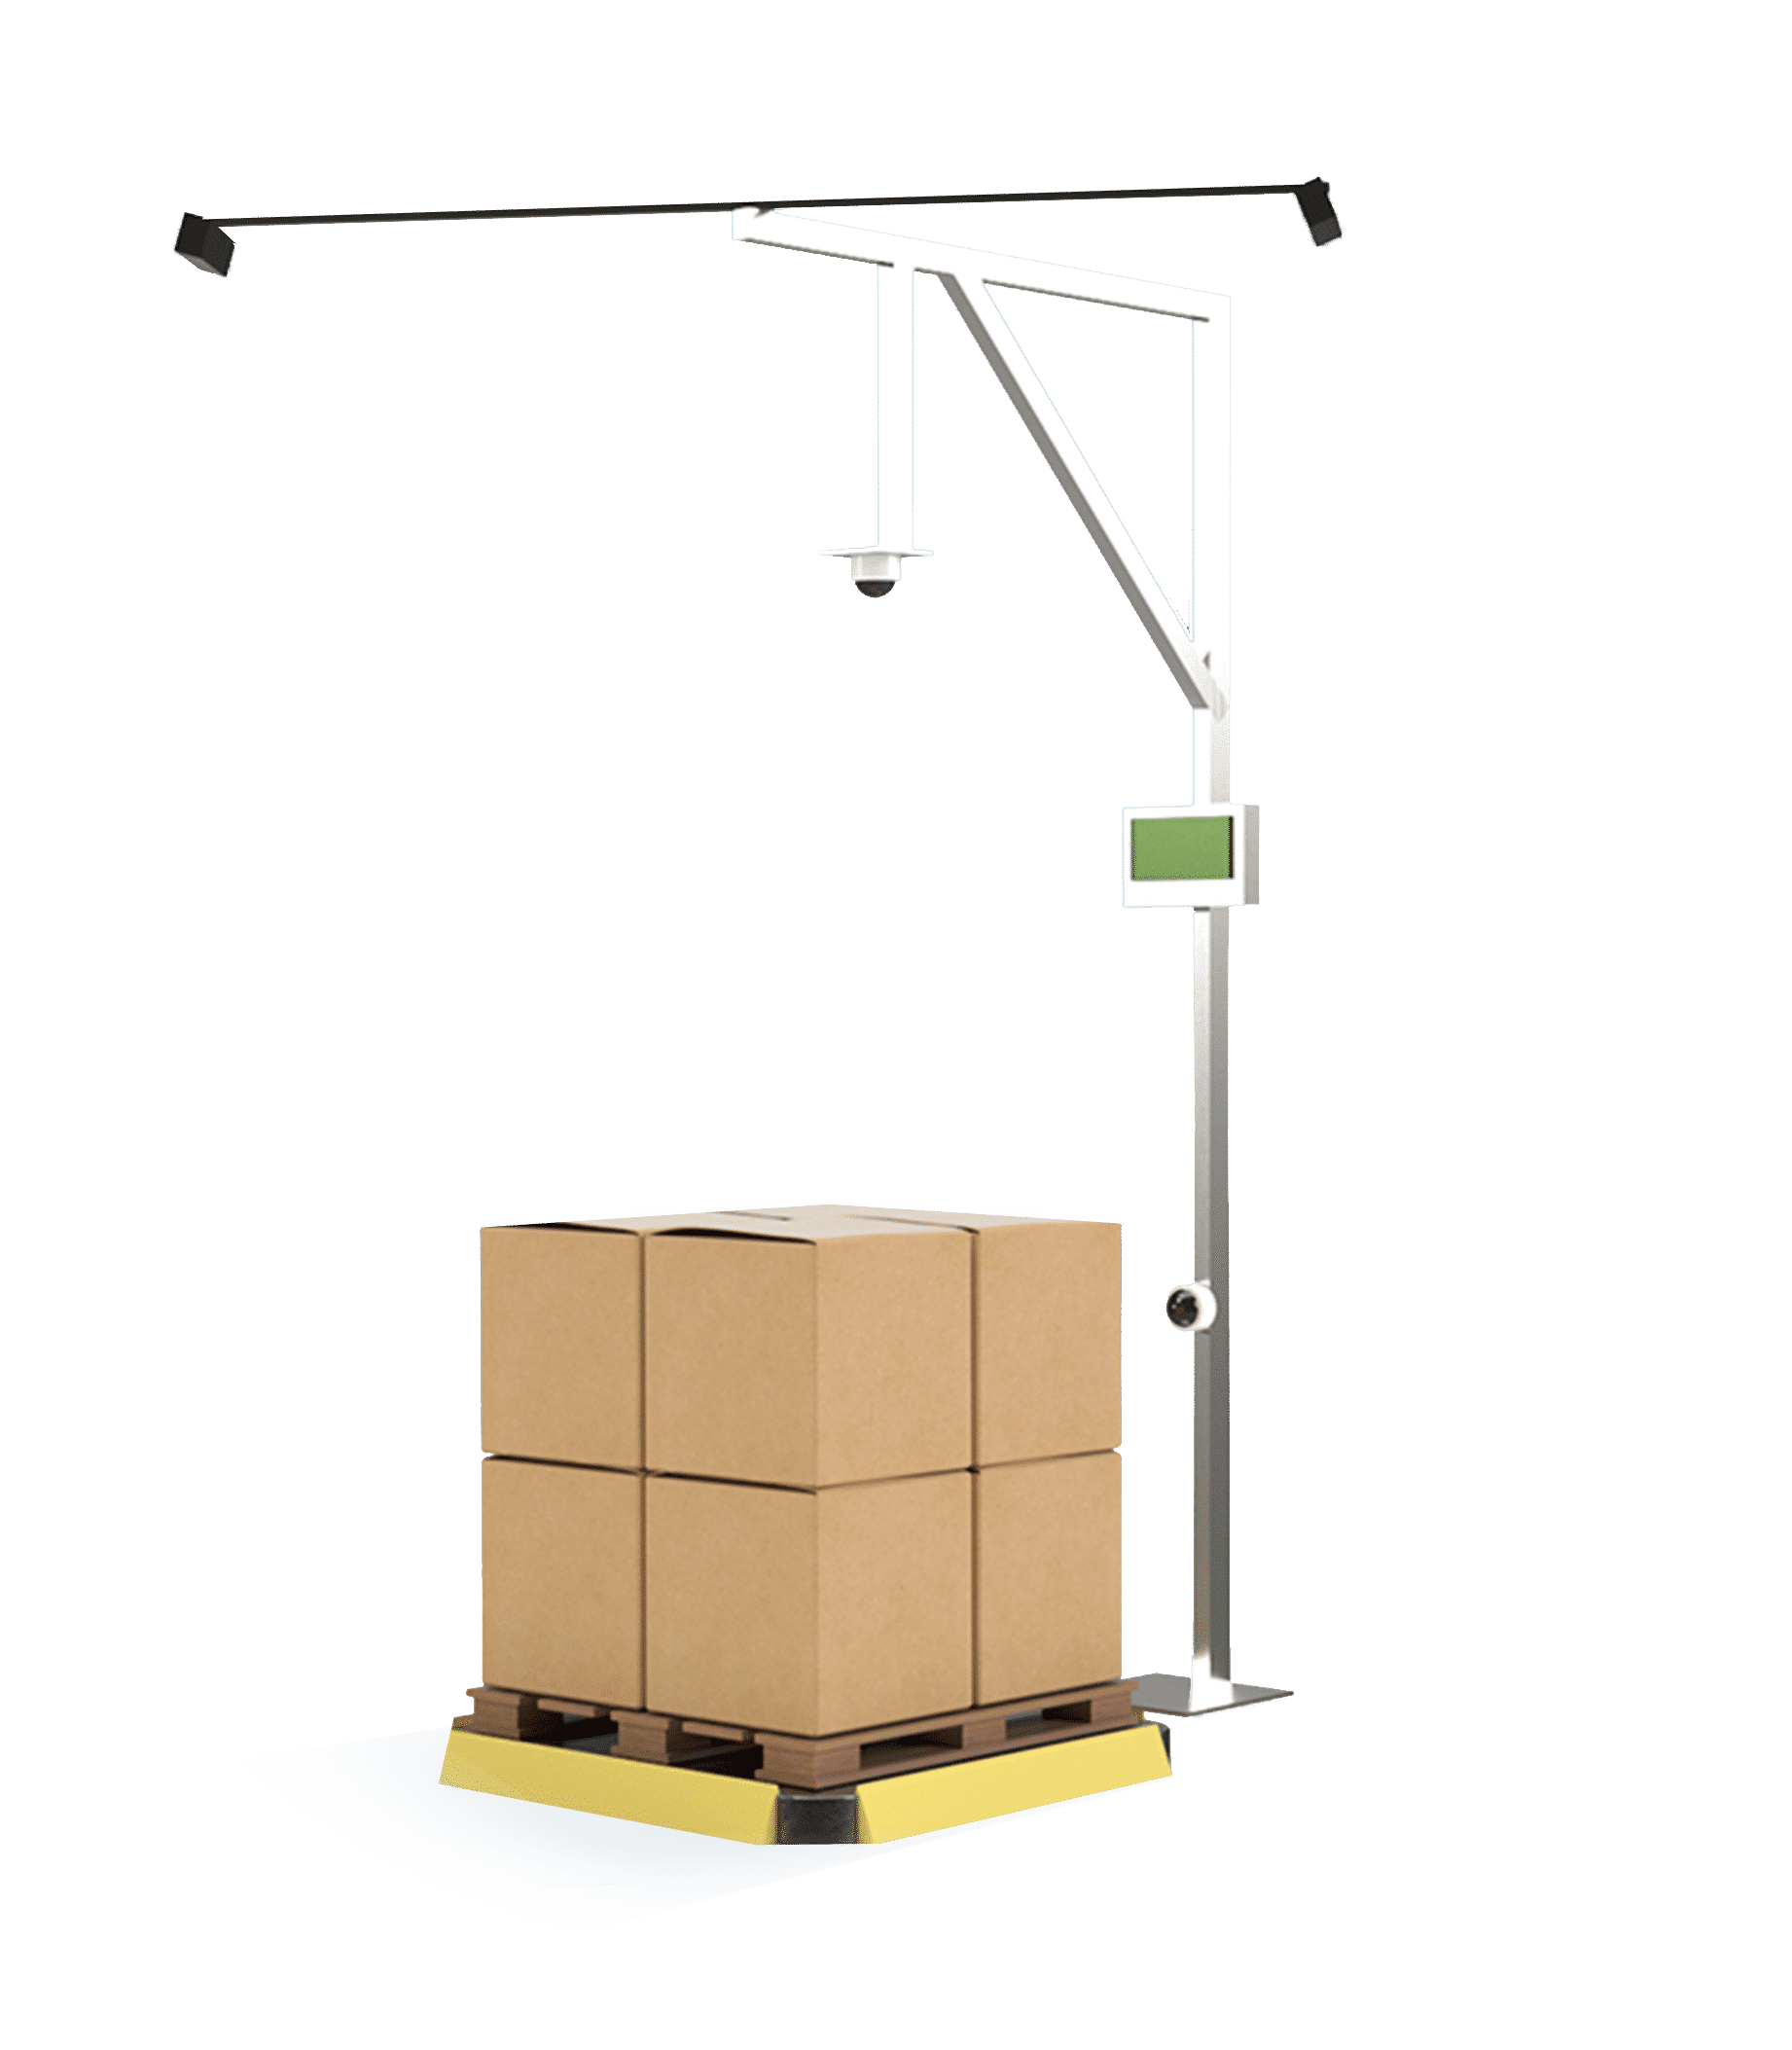 Magaya Pallet Dimensioner for 3PL Warehouse Productivity - Syncs with Your Existing 3PL Software